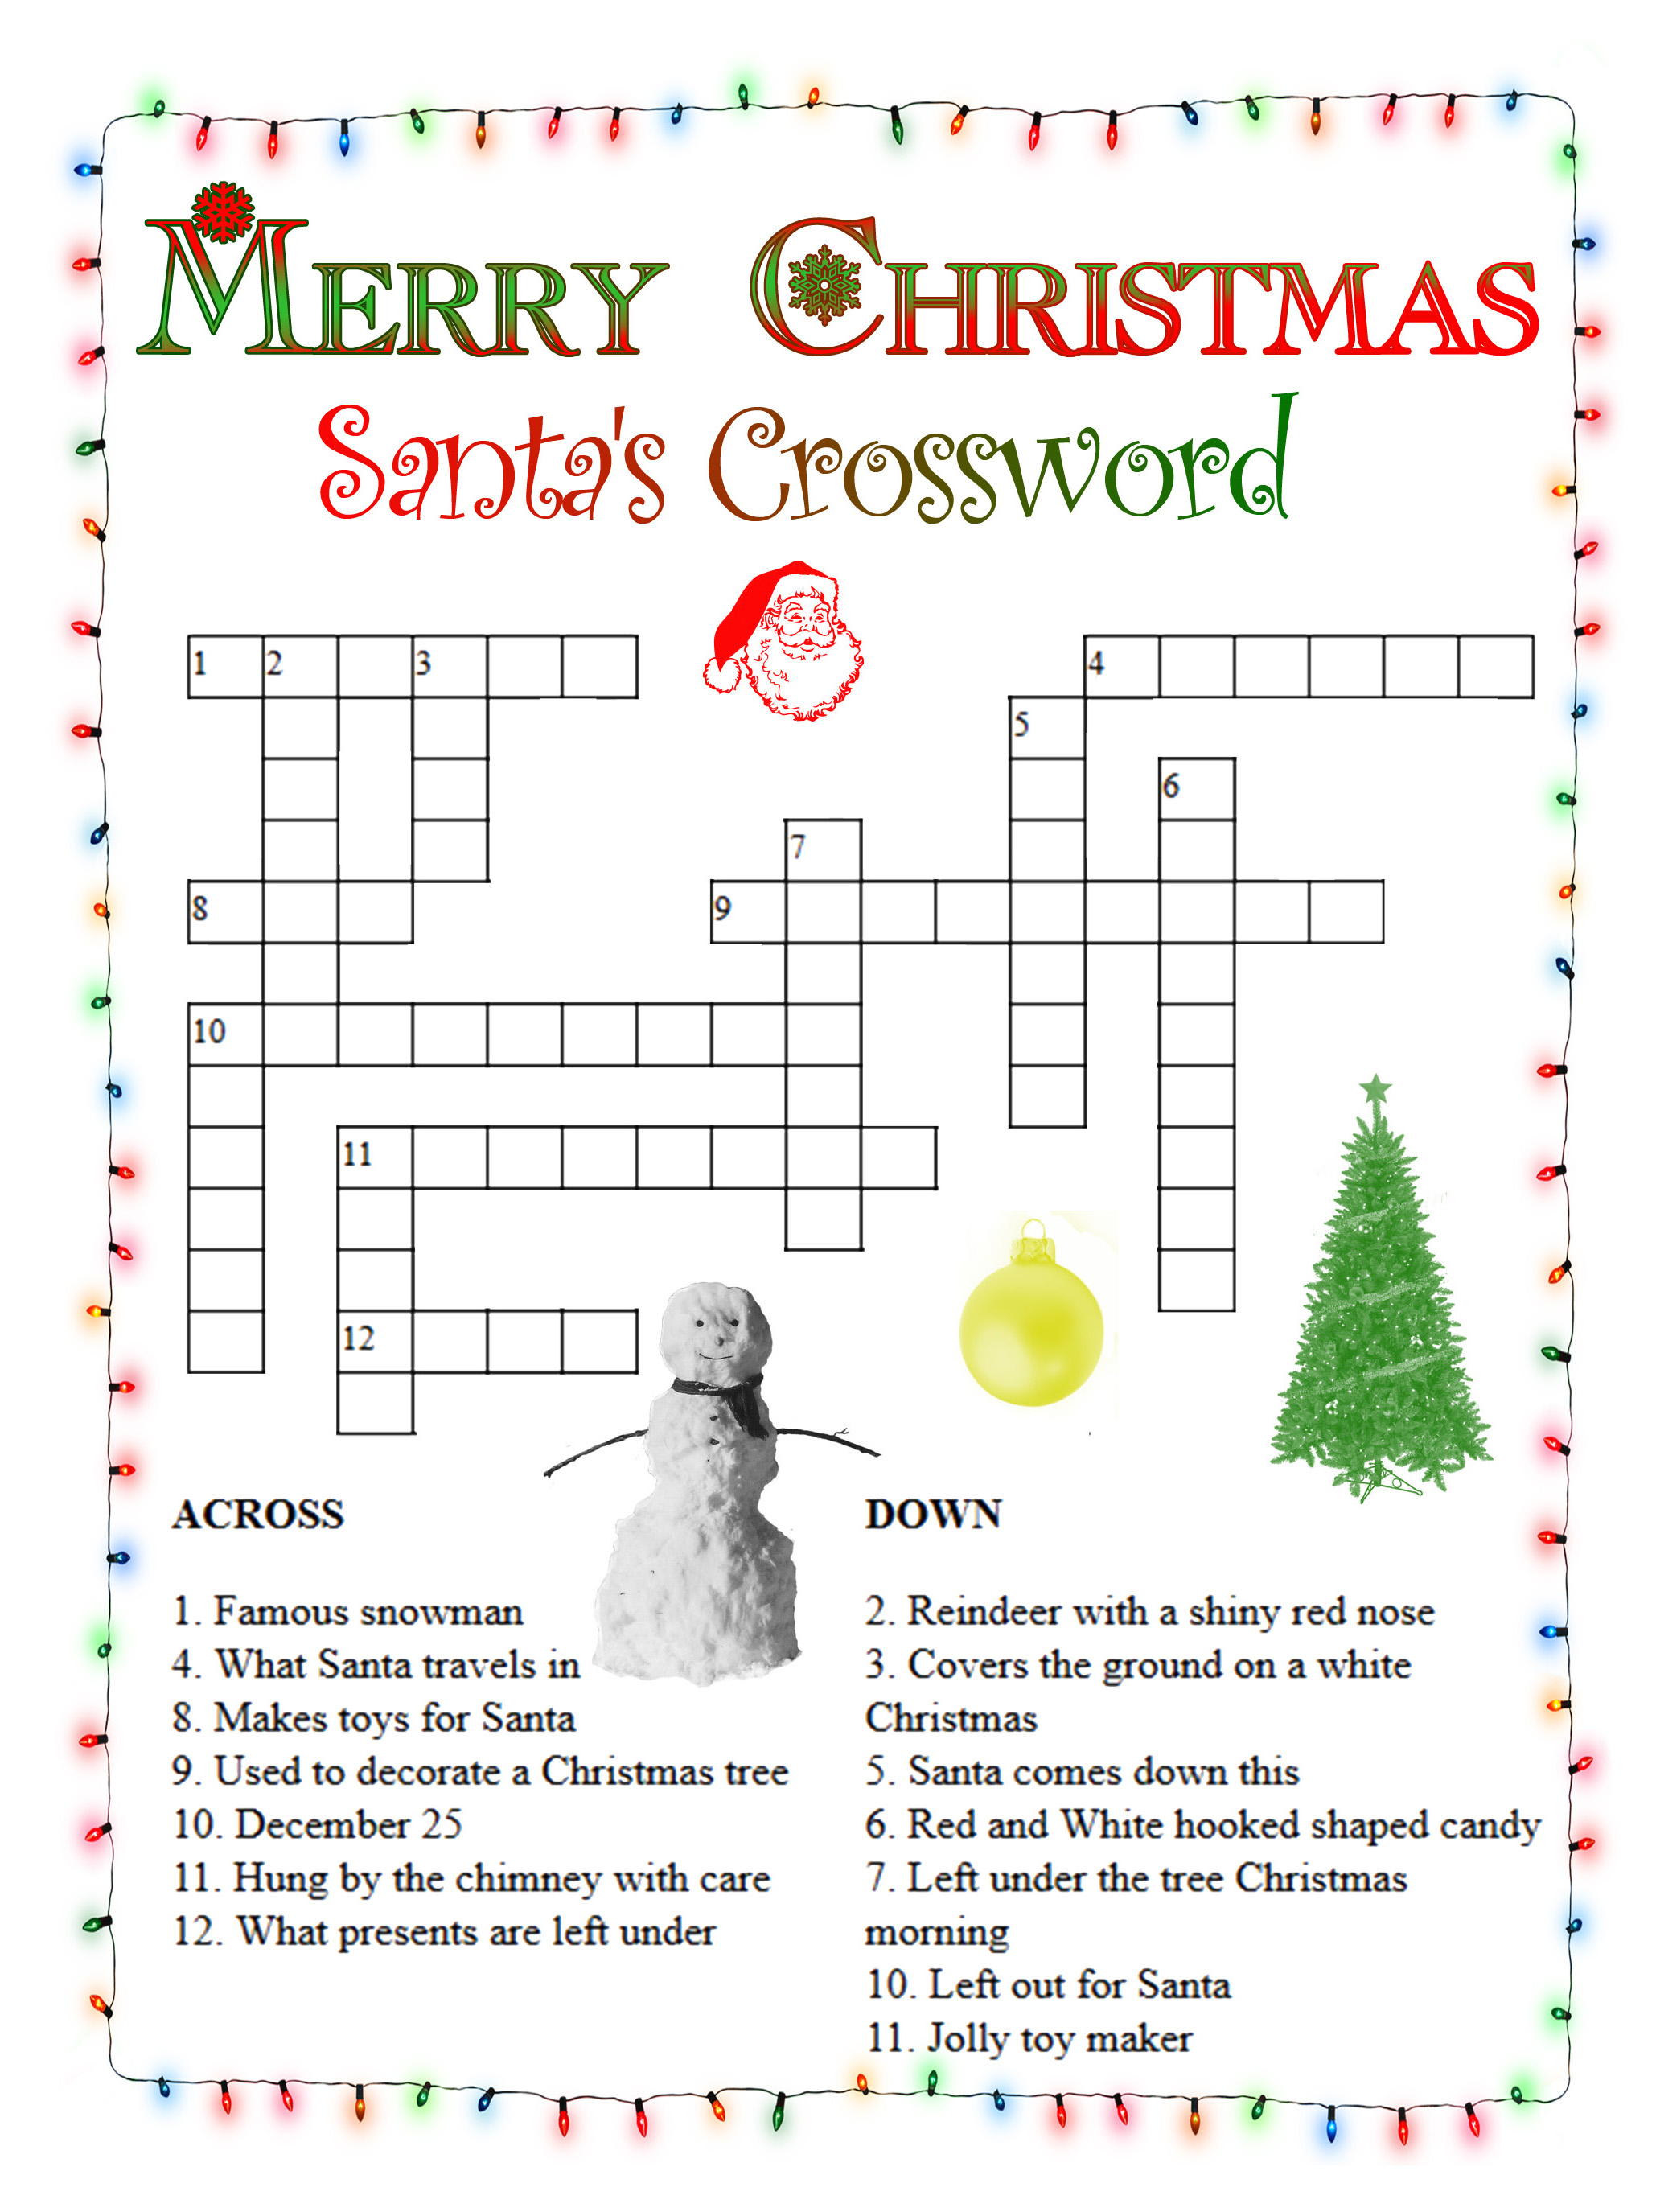 Christmas Crossword Puzzles - Best Coloring Pages For Kids - Printable Xmas Crossword Puzzles